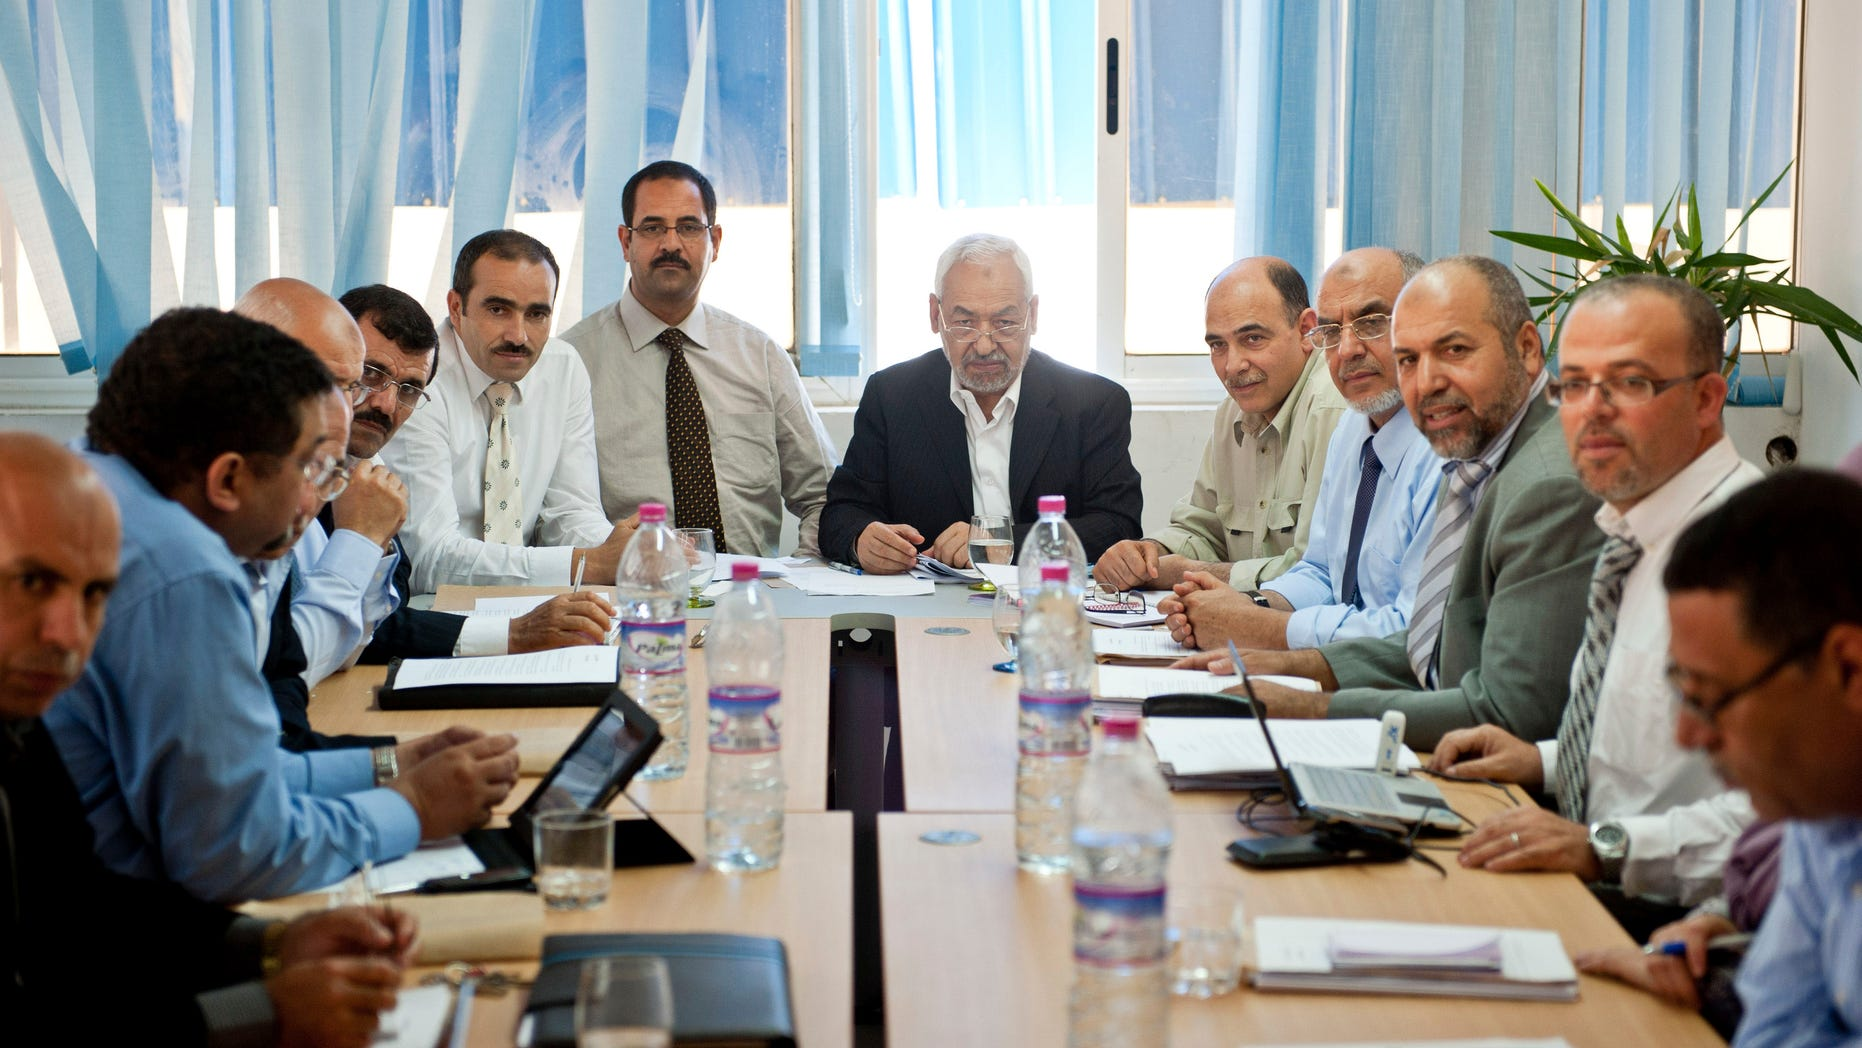 Oct. 27, 2011: Tunisian leader and founder of the moderate islamist party Ennahda, Rached Ghannouchi, center right, chairs an executive board at the party's headquarters in Tunis.